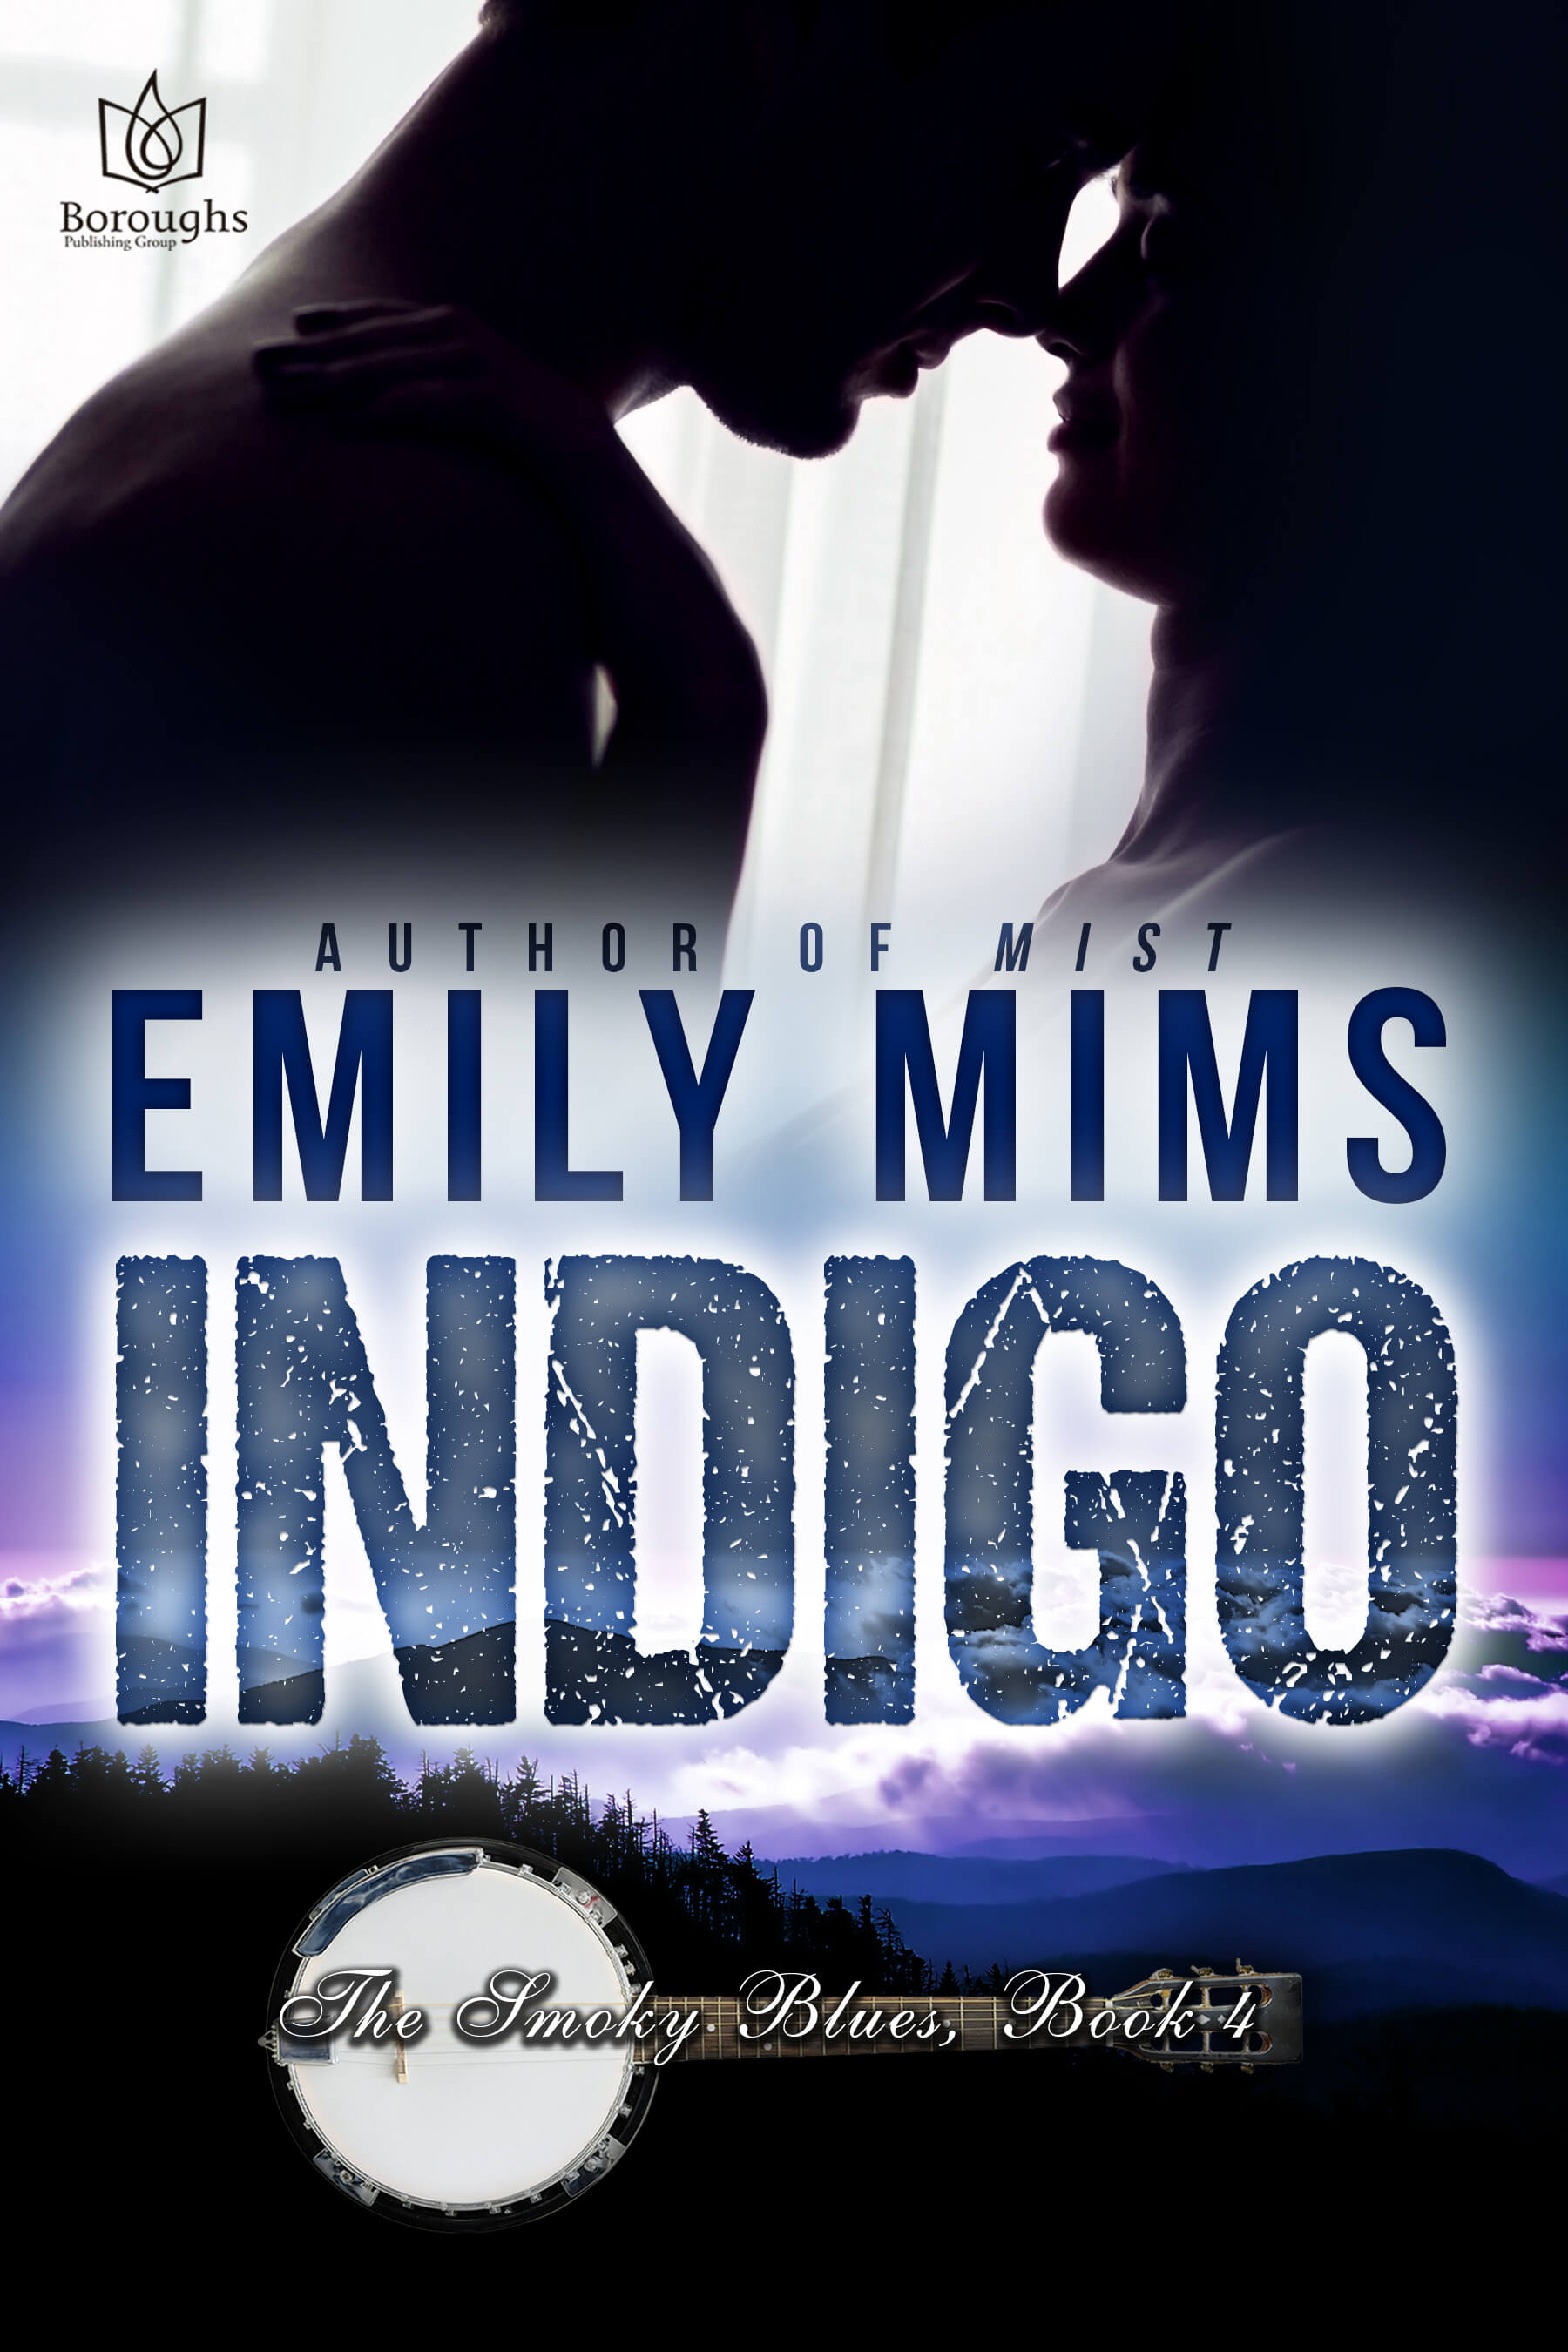 Indigo by Emily Mims #authorlove #newrelease #boroughspubgrp #emilymims